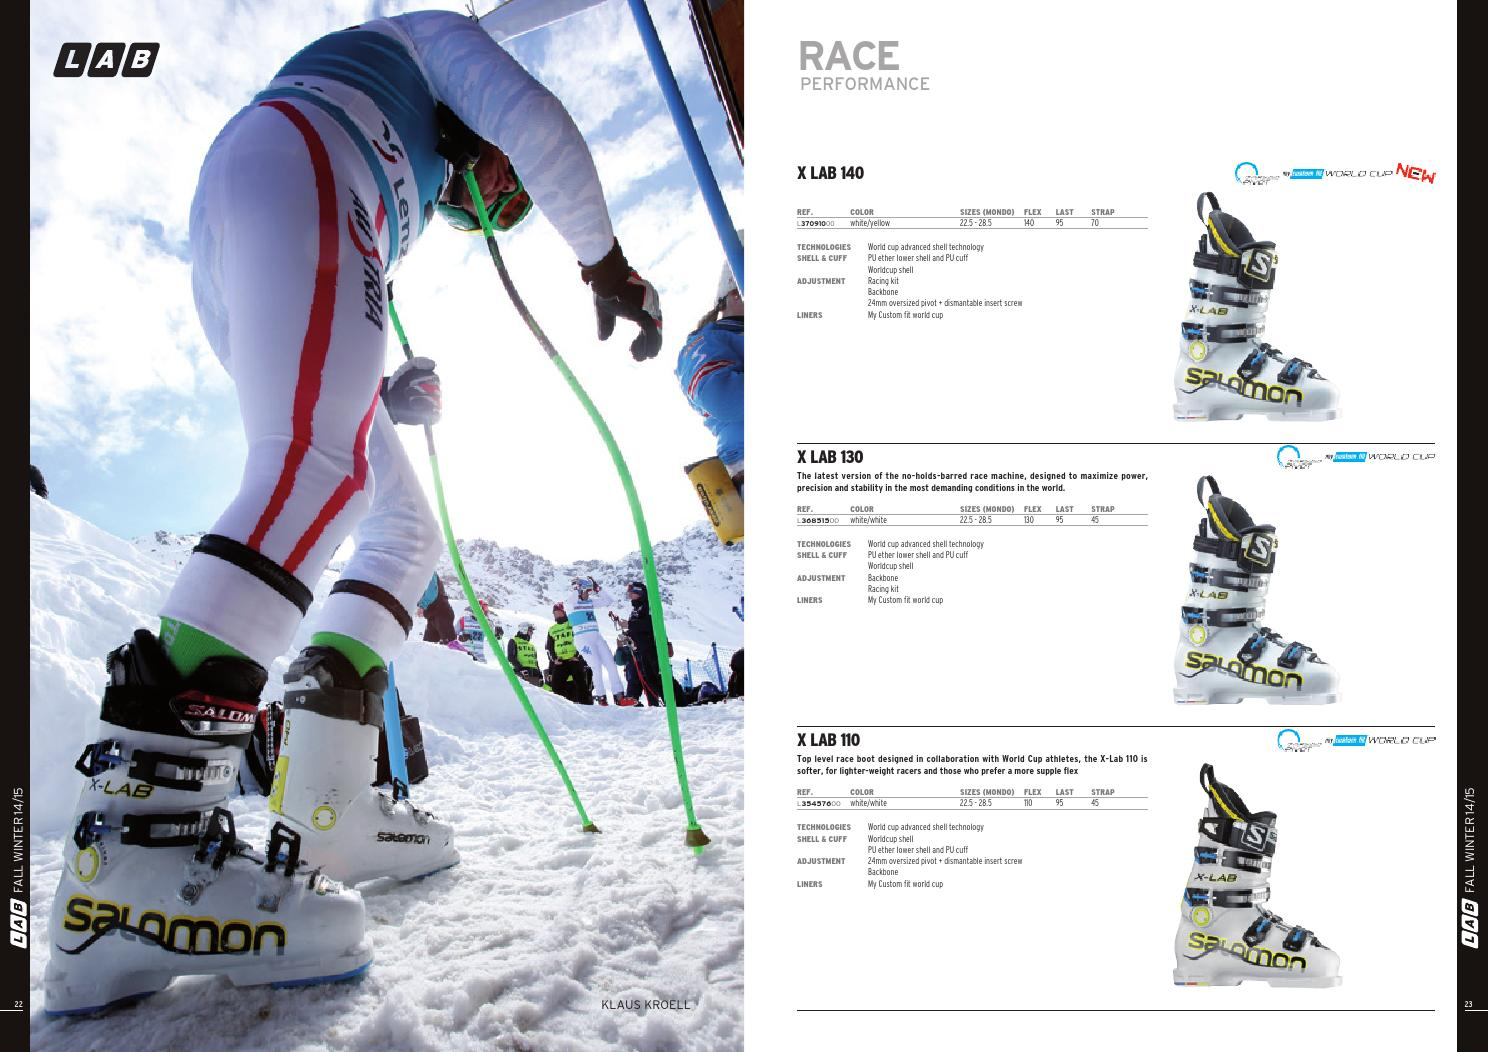 SALOMON alpin katalog 2014 15 by skirace.sk